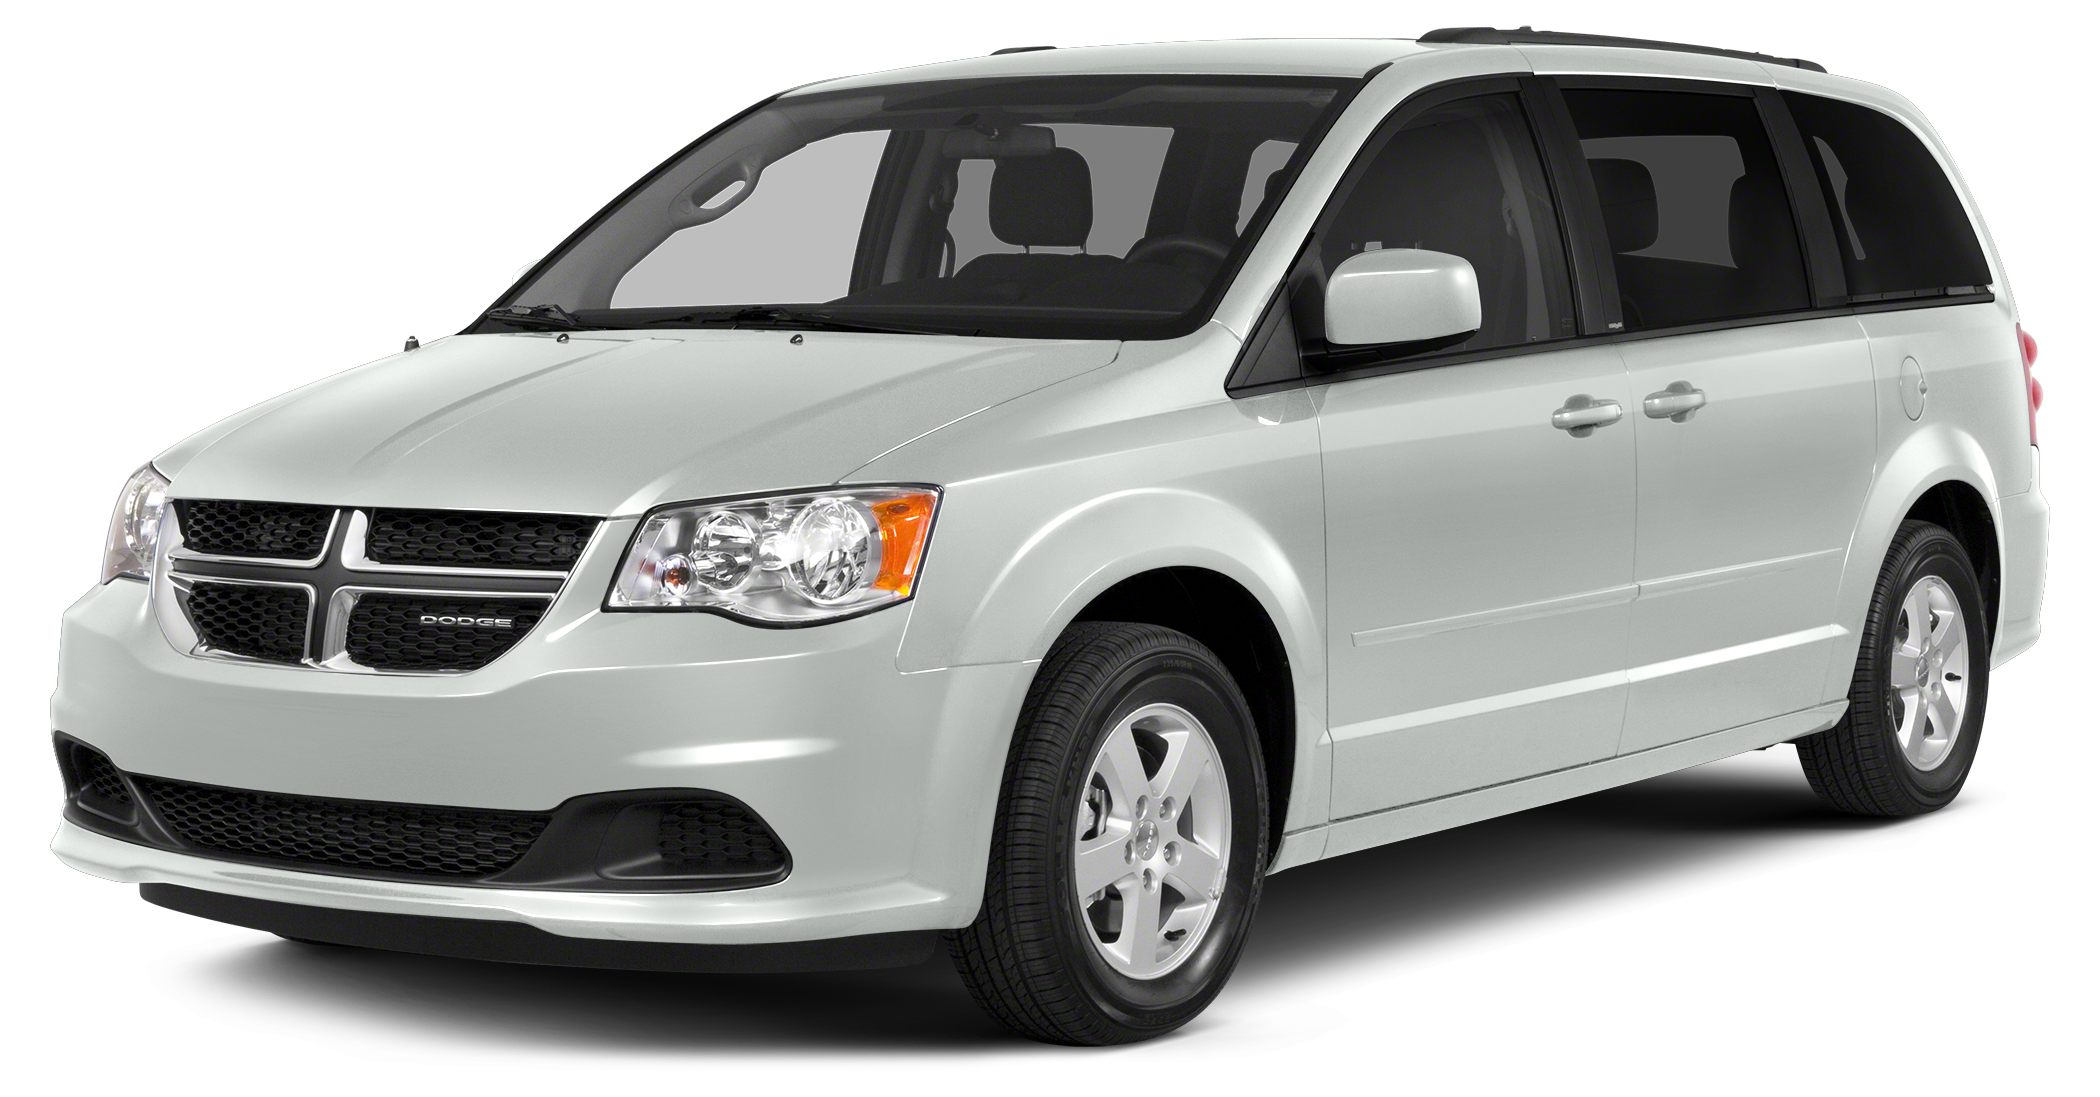 2014 Dodge Grand Caravan AVPSE Miles 44001Color White Stock U2396 VIN 2C4RDGBG1ER319788